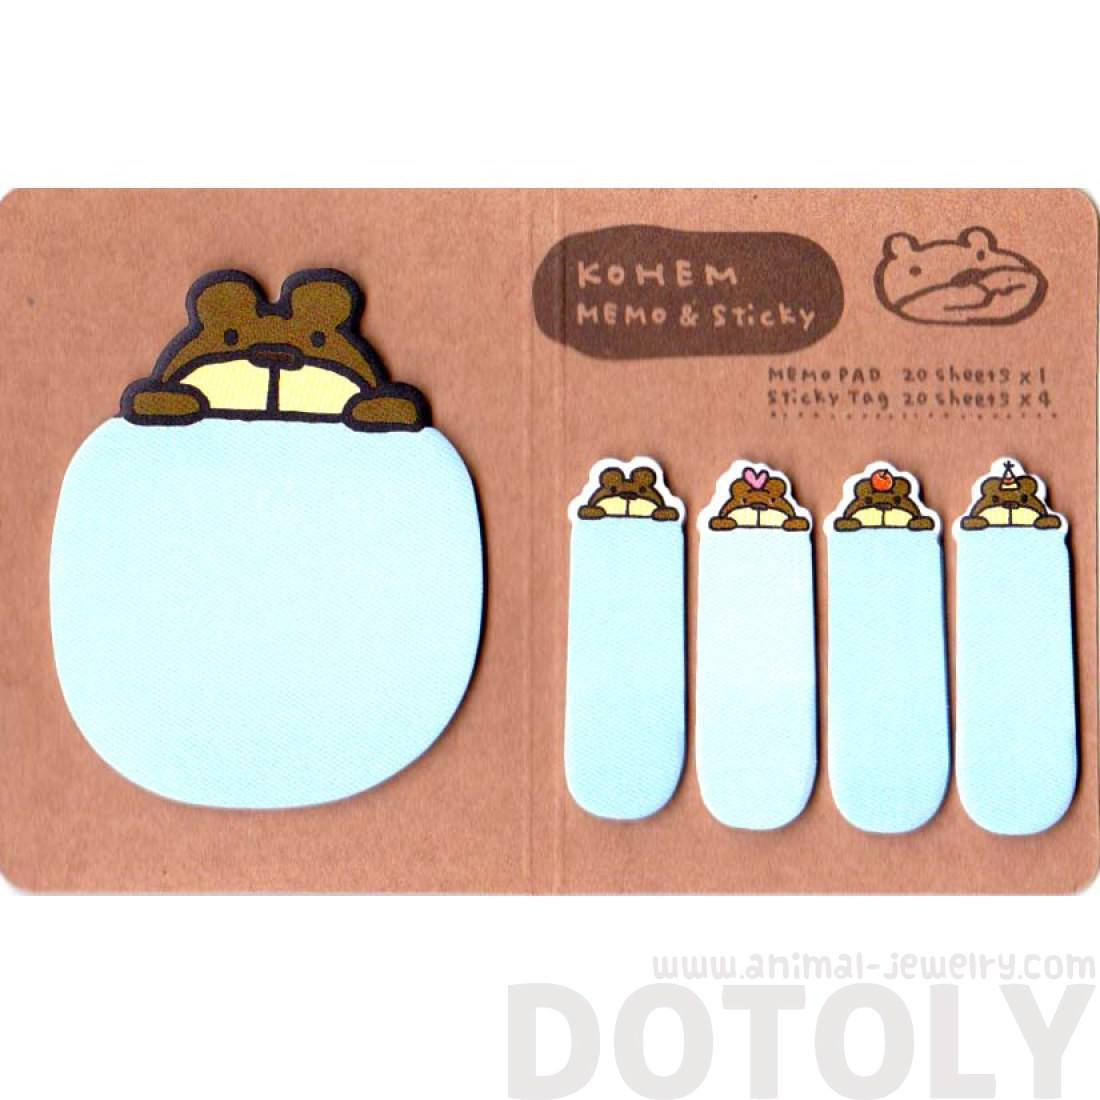 Brown Bear Shaped Adhesive Post-its and Memo Notepad